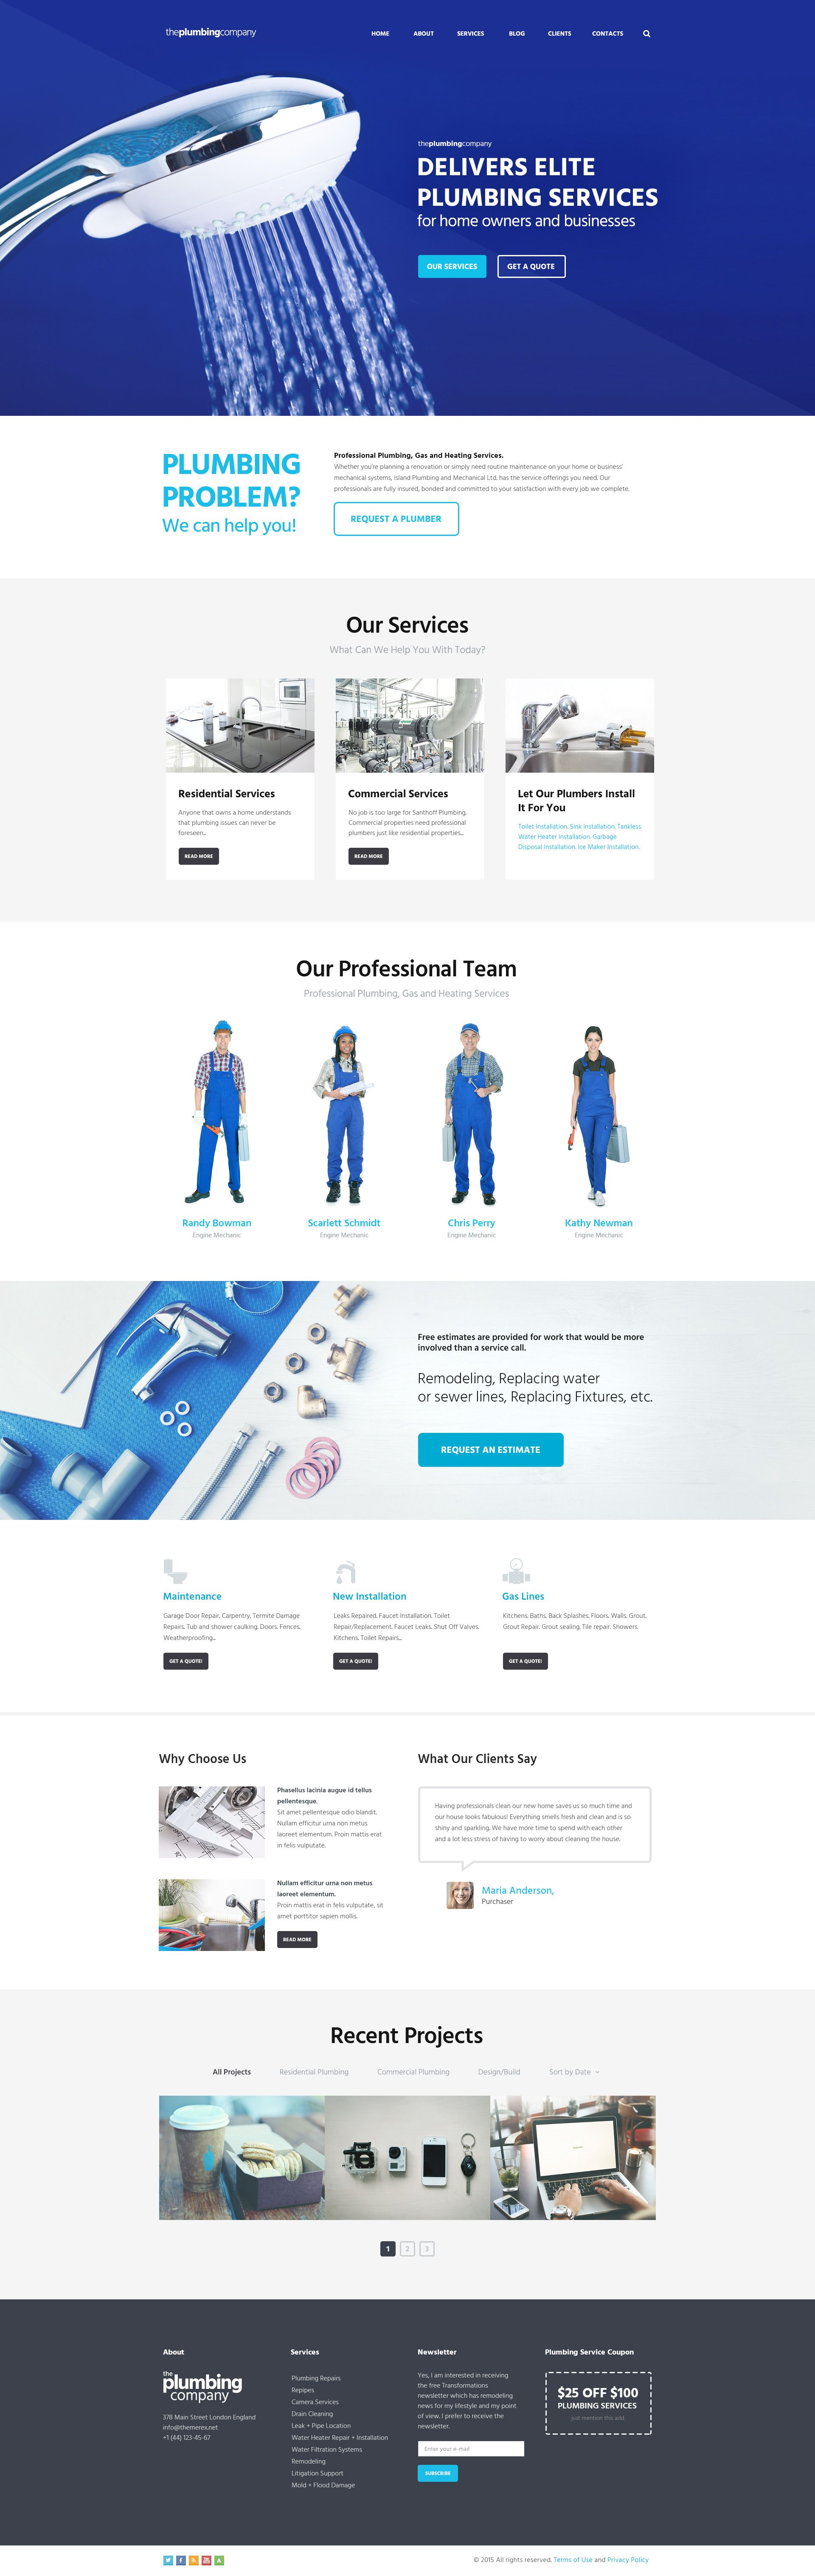 Wordpress Theme Is Designed For Plumbing Companies And Firms But It Fits Perfectly For Any Website Design Layout Website Design Trends Business Website Design